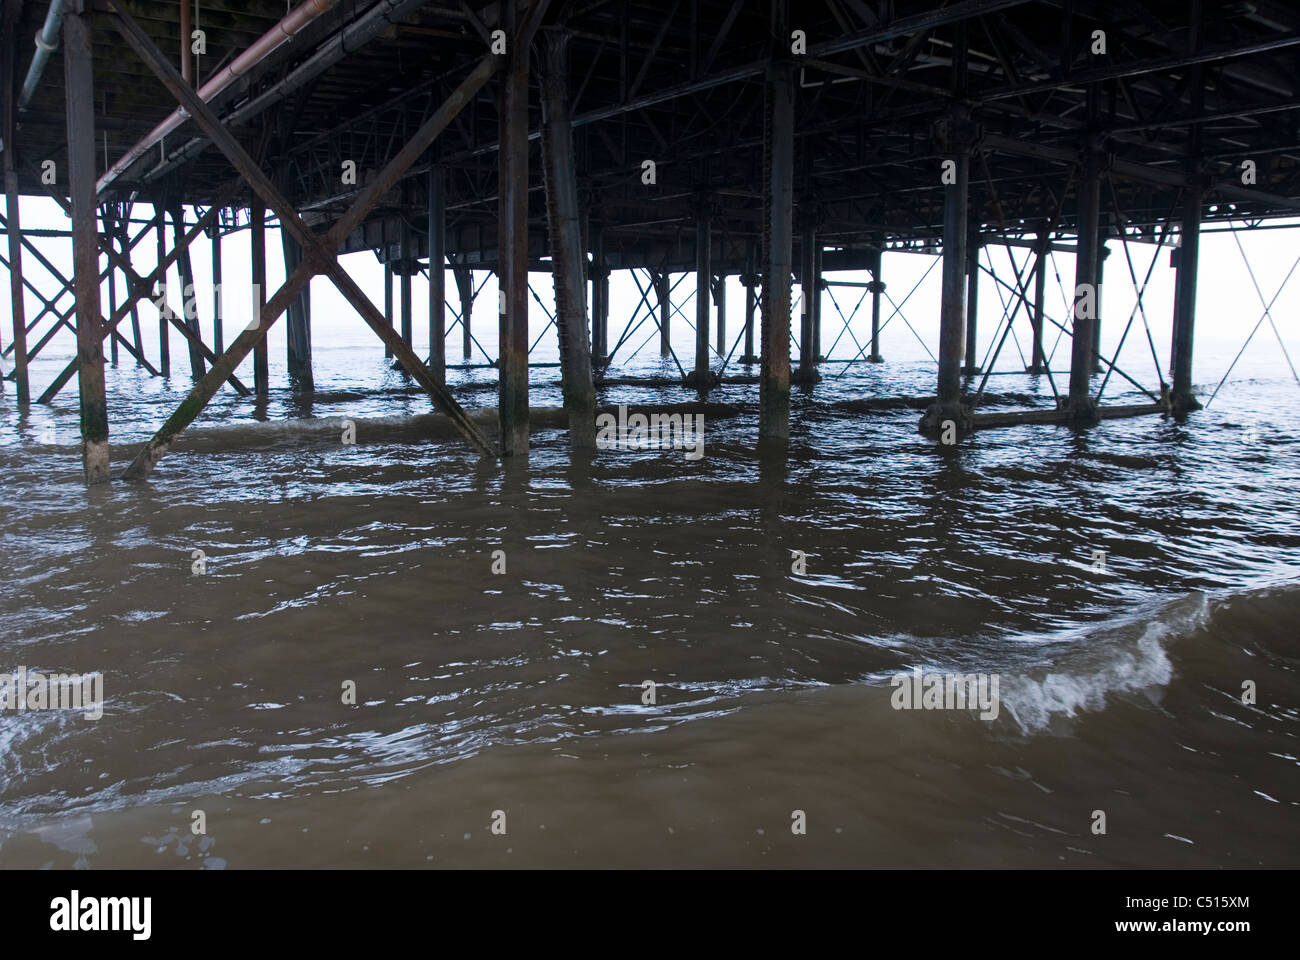 Steel Girders, Legs and Structural Supports Underneath The Pier, Cleethorpes, South Humberside, UK - Stock Image